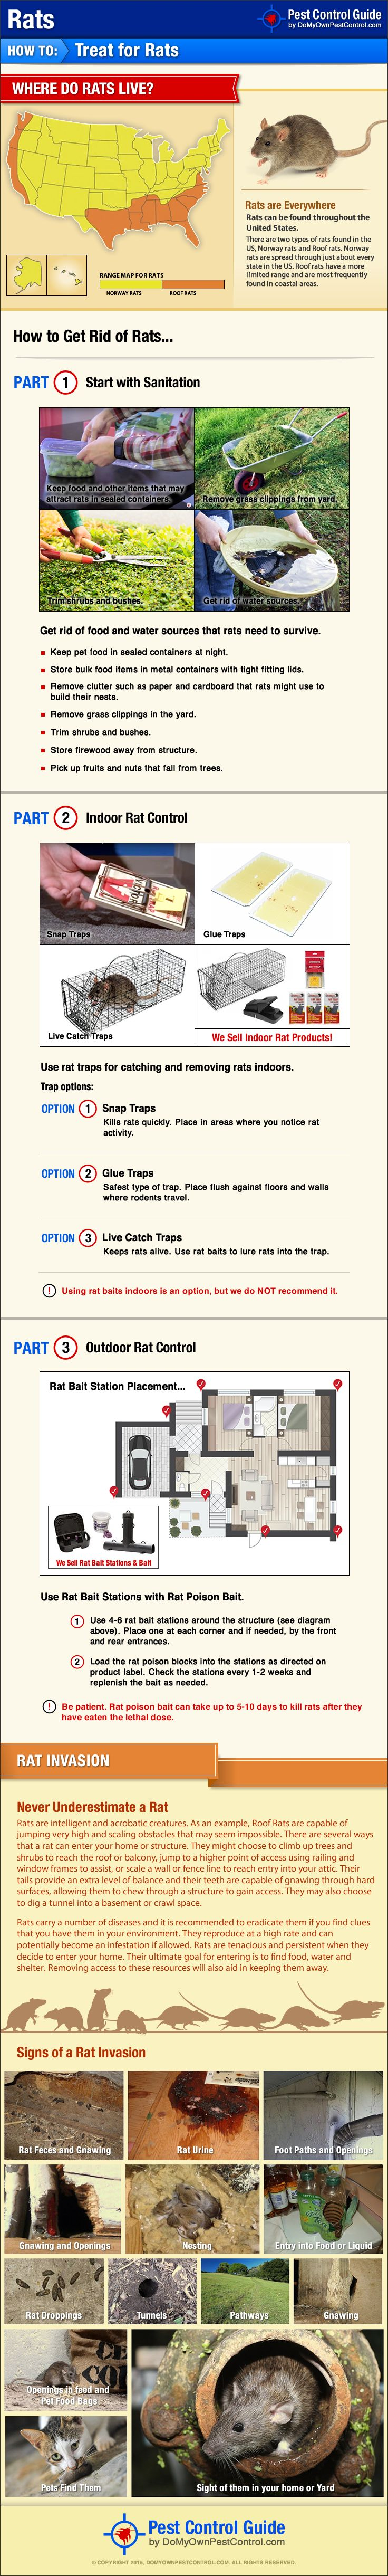 best 25 getting rid of rats ideas on pinterest getting rid of